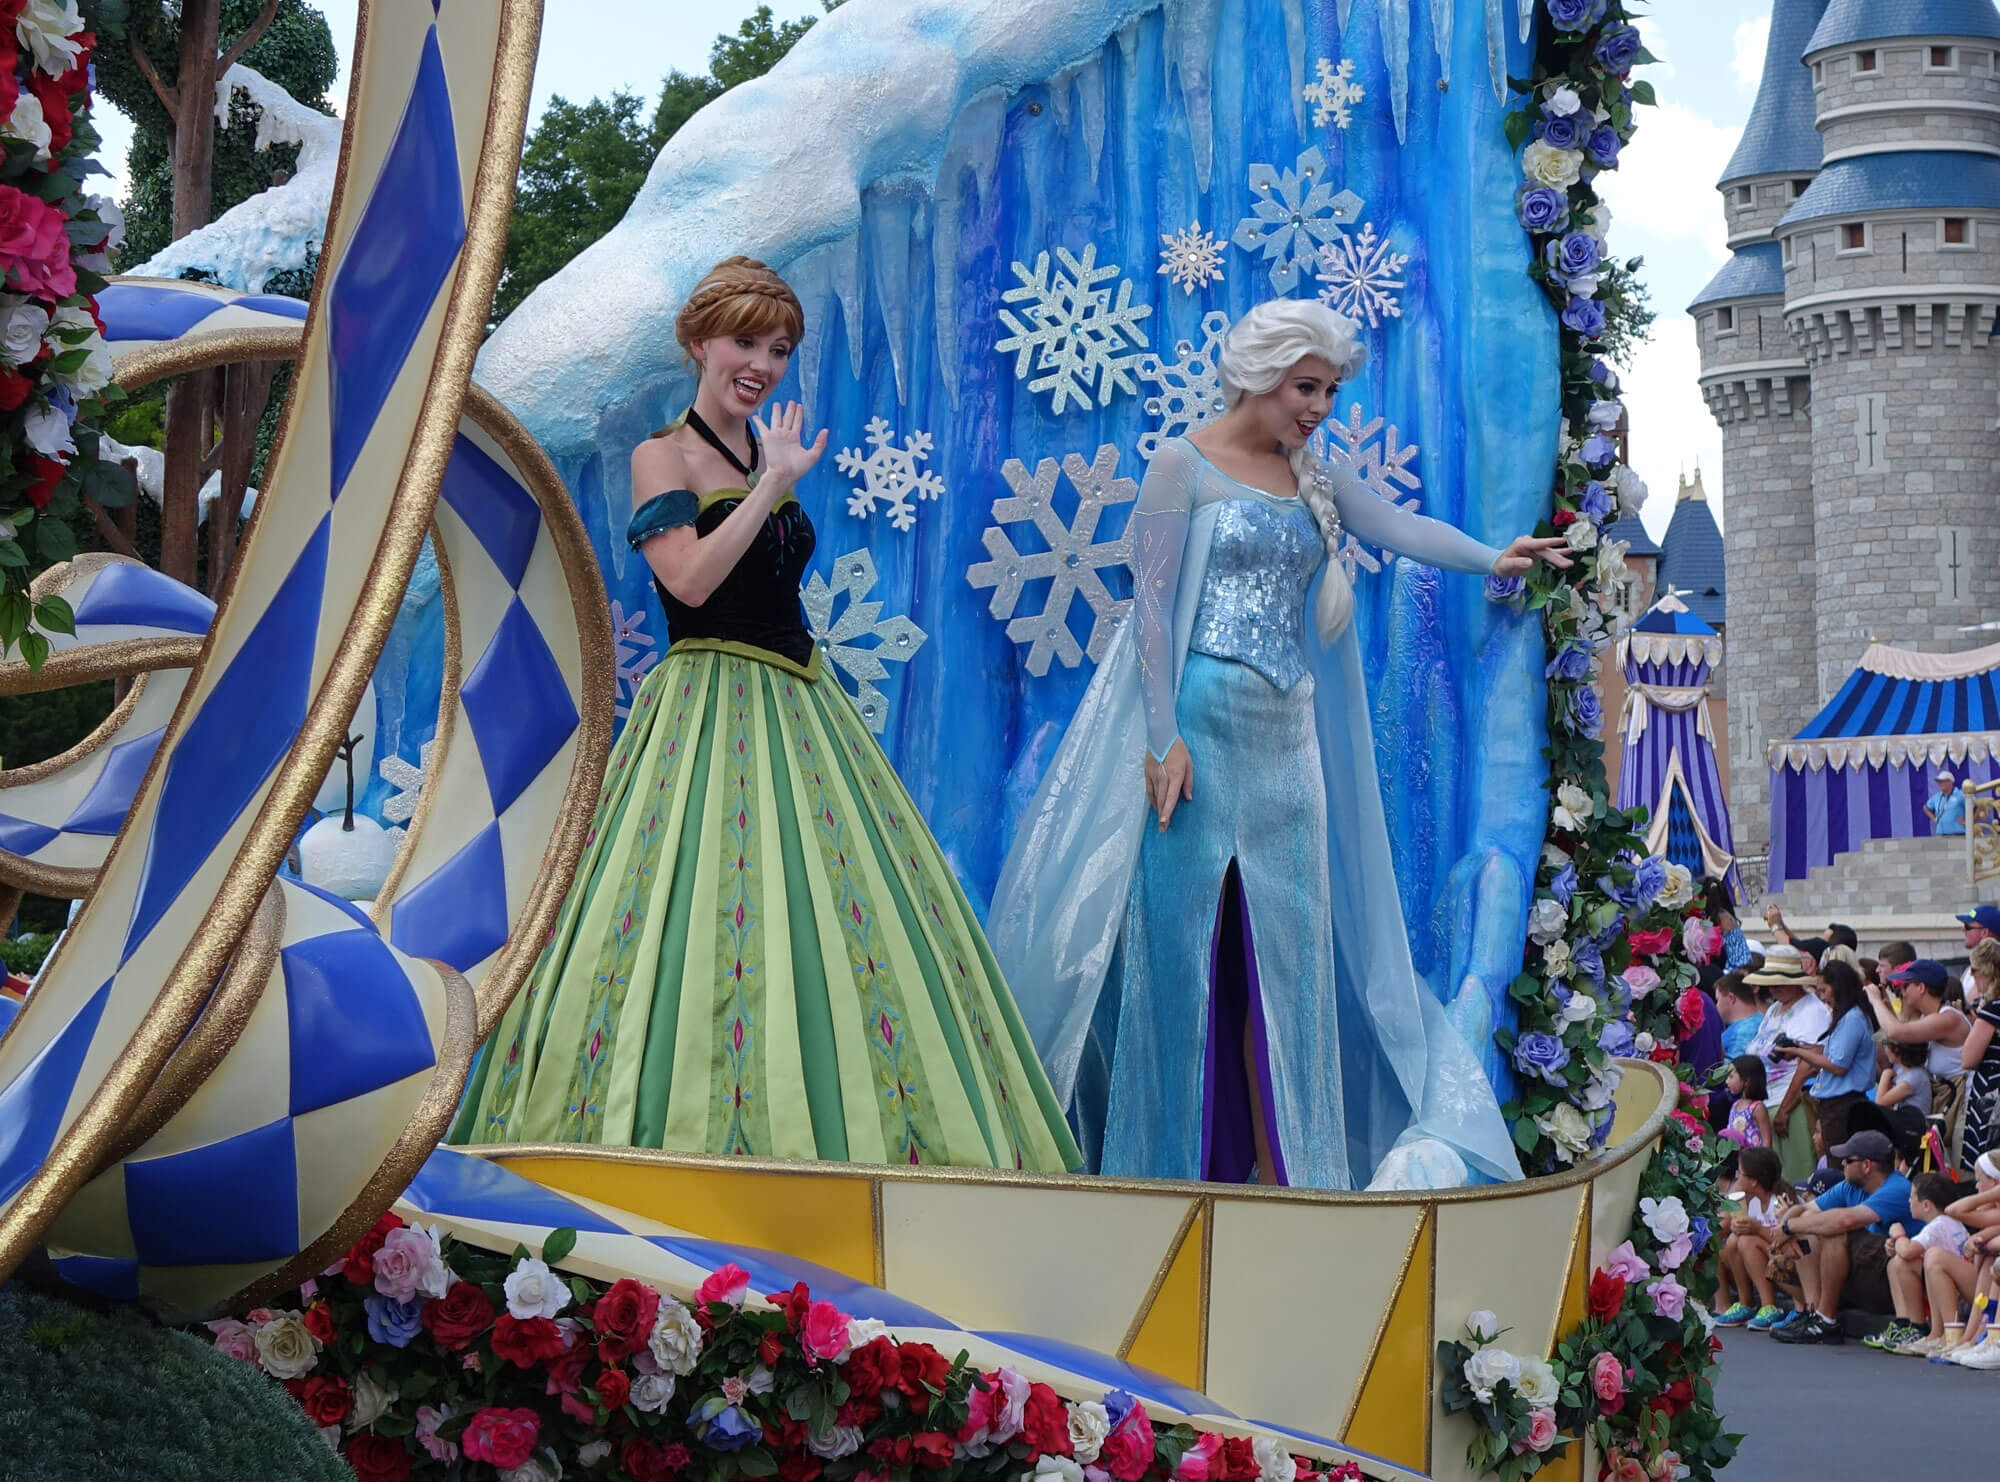 Celebrating a Birthday at Disney World - Elsa and Anna in parade